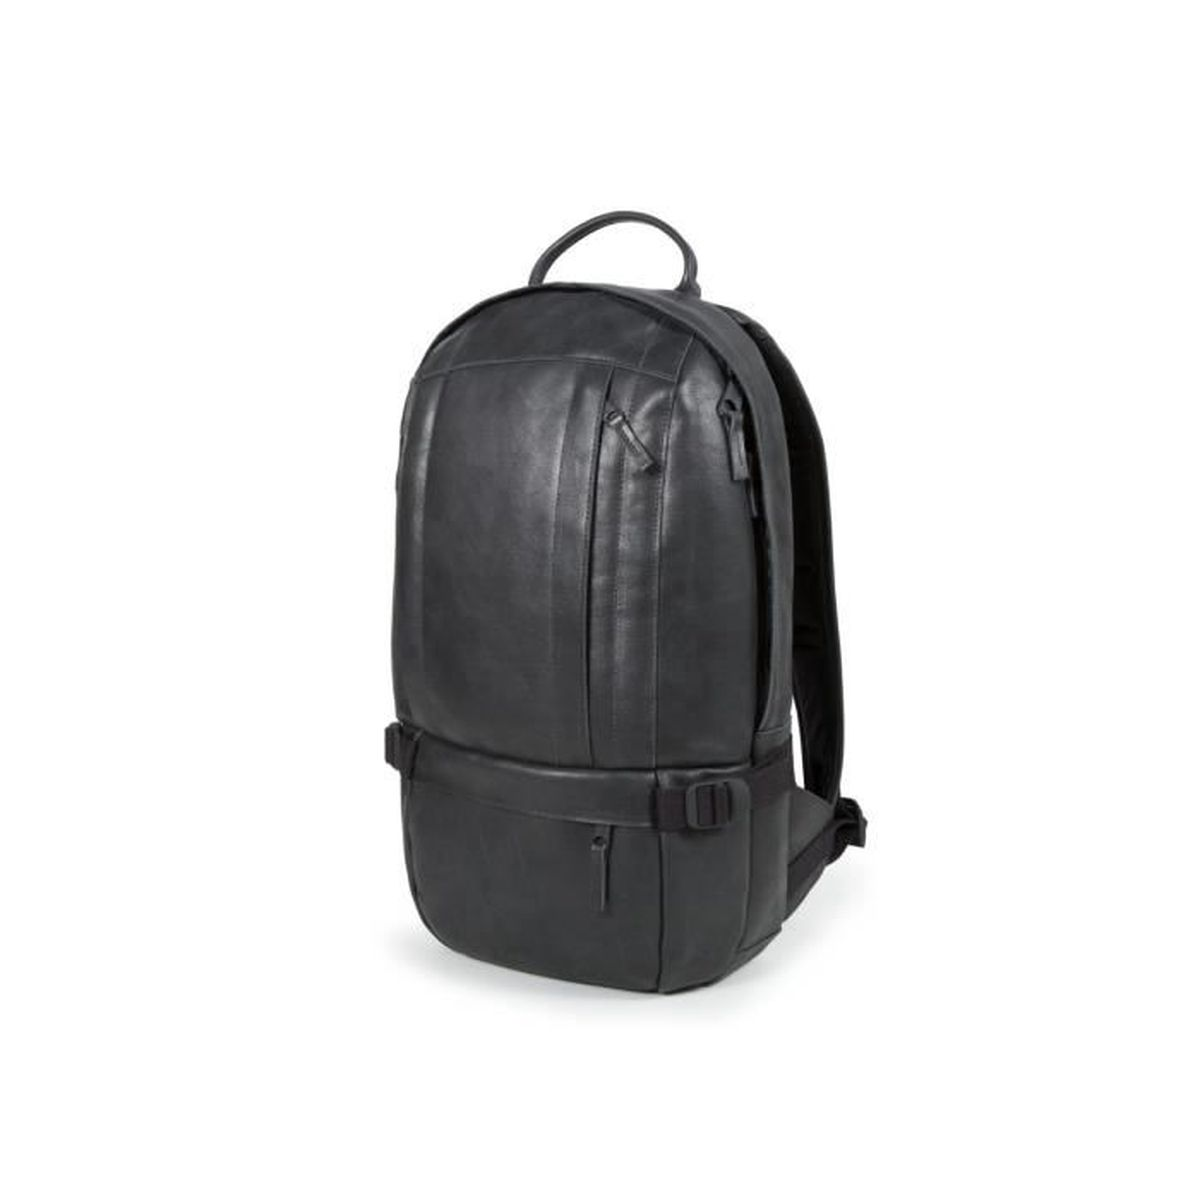 eastpak sac a dos homme achat vente sac dos 5415320544069 cdiscount. Black Bedroom Furniture Sets. Home Design Ideas